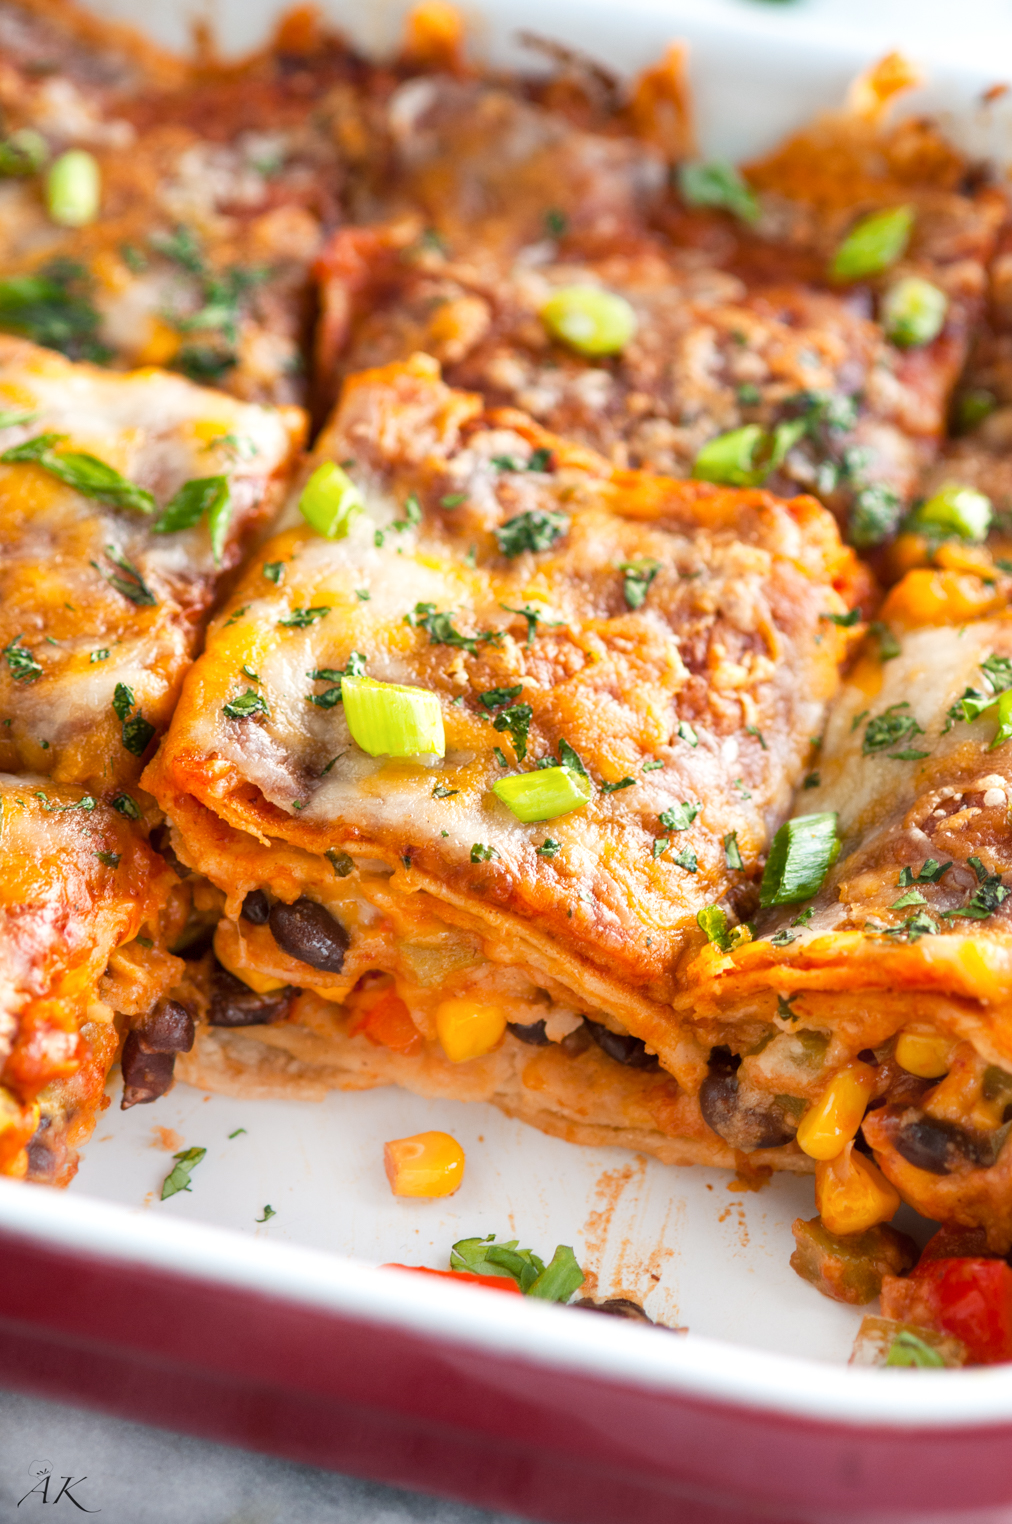 Vegetarian Black Bean Enchilada Casserole - Aberdeen's Kitchen